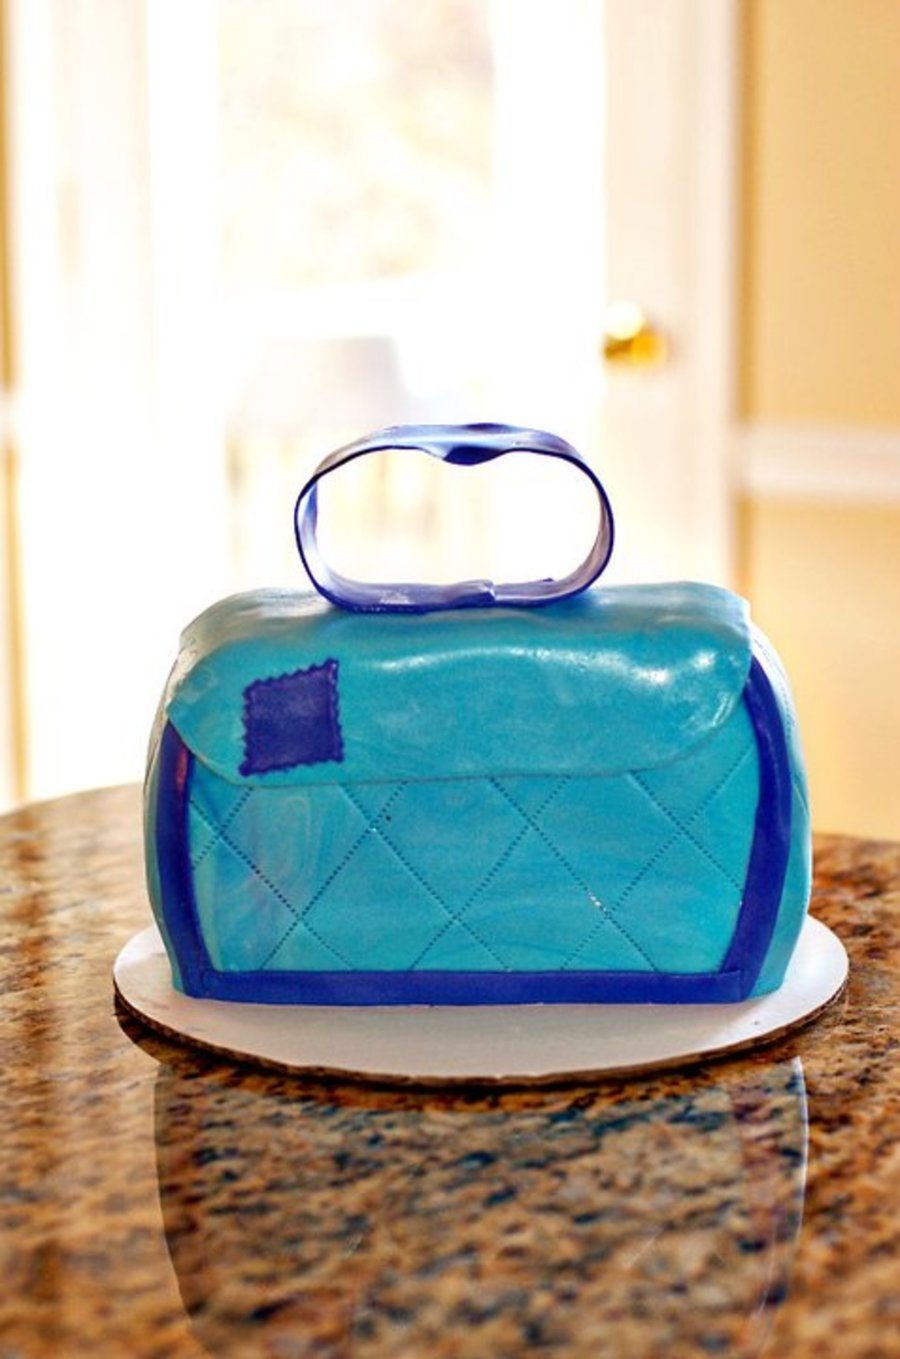 Purse Cake on Cake Central